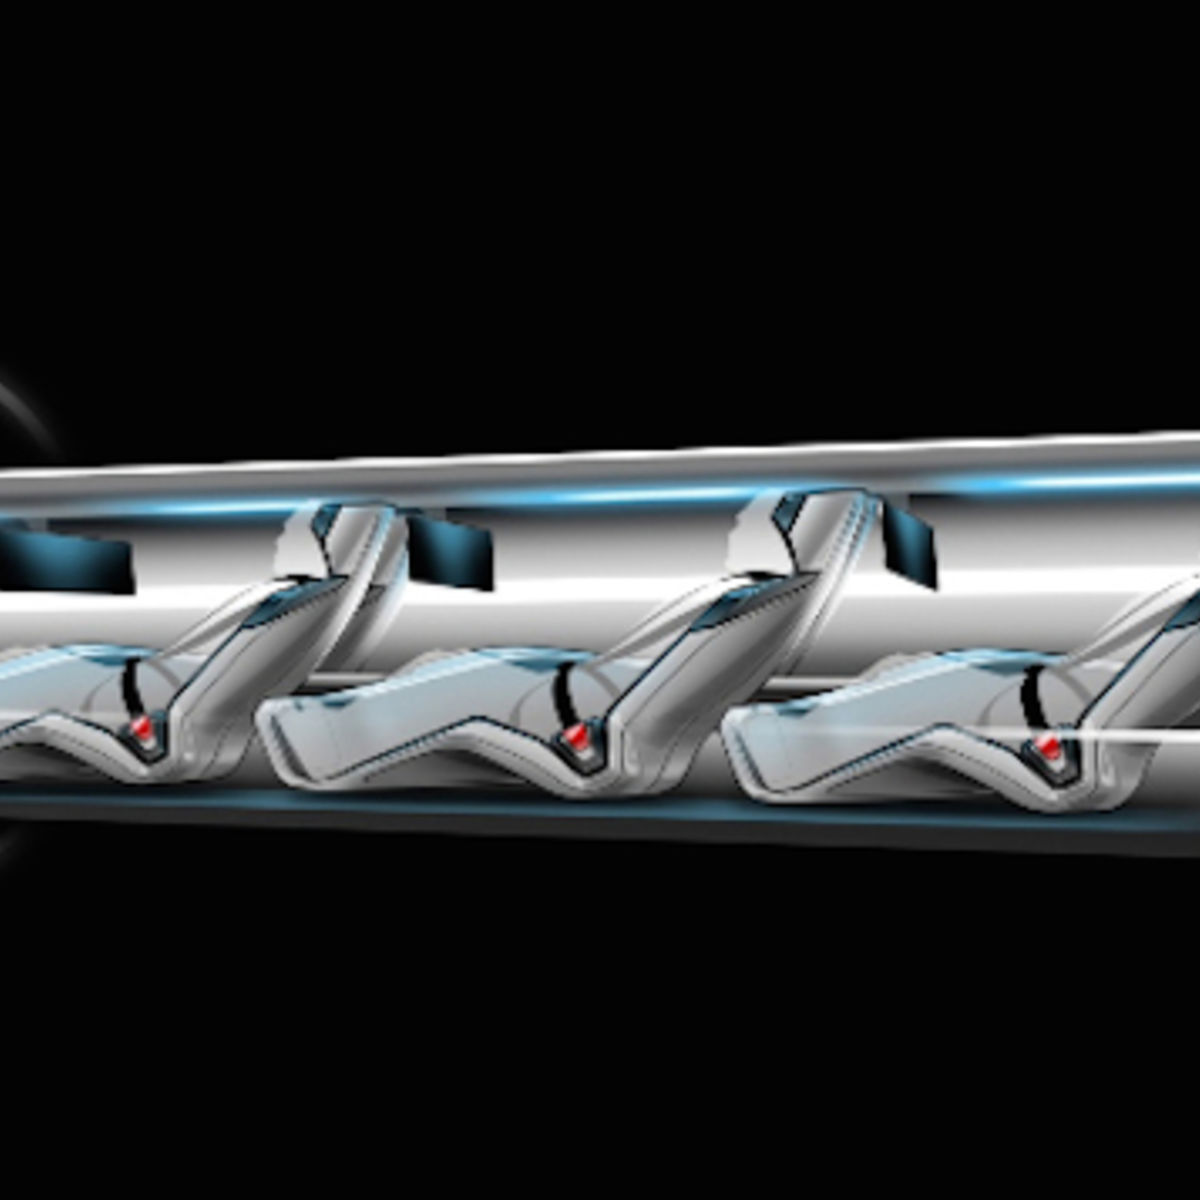 6C8605165-130812-hyperloop-passengers-458p.jpg